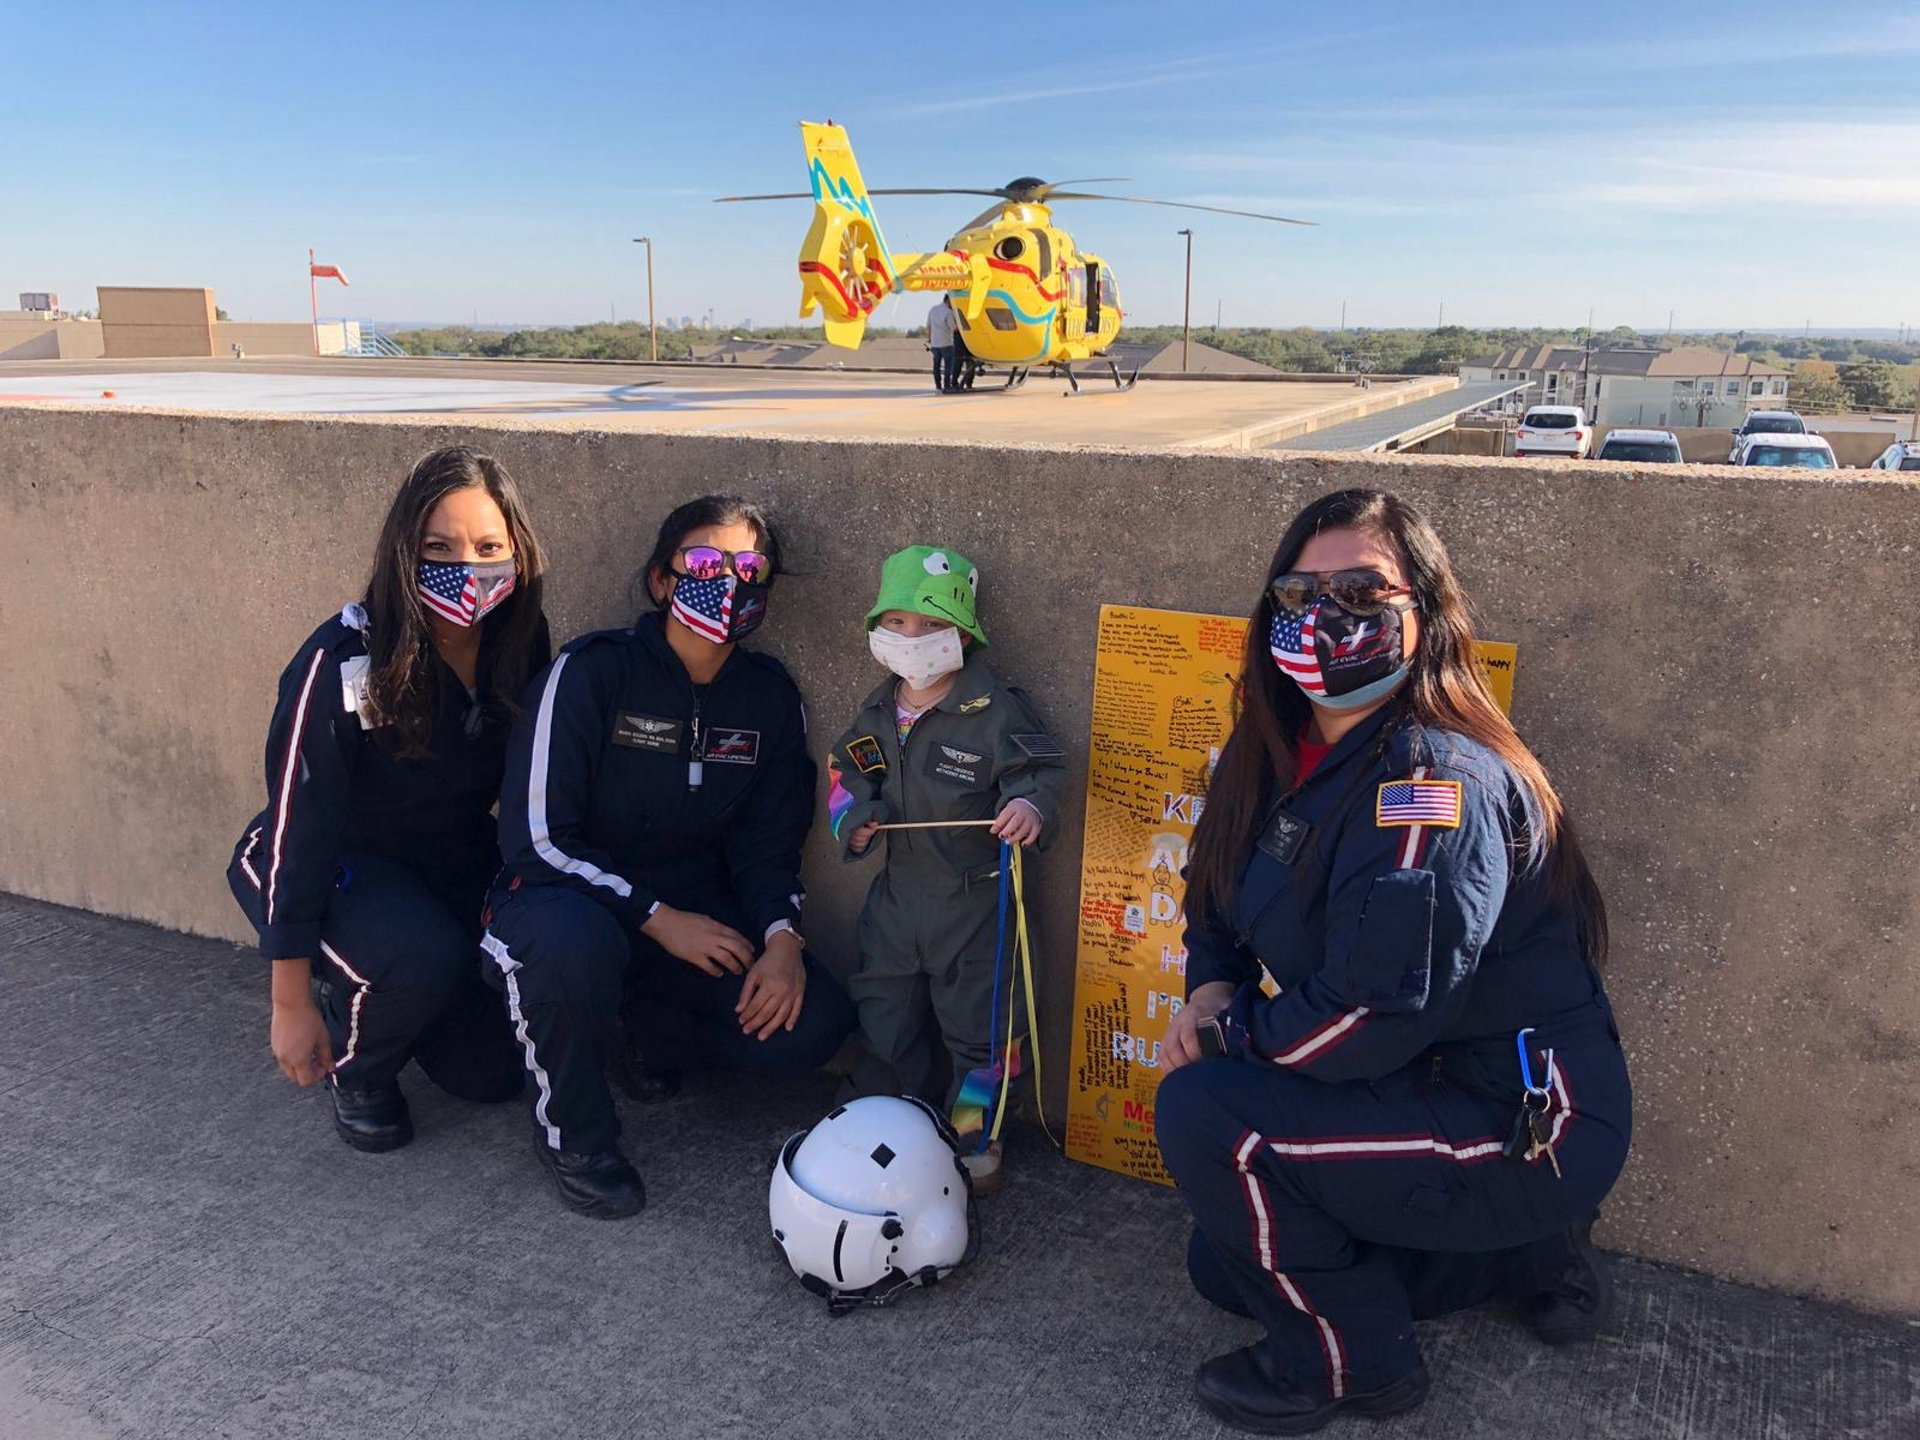 Crew members from Methodist AirCare welcomed their new honorary teammate Bodhi with a flight aboard the operator's EC135 helicopter, visible in the background